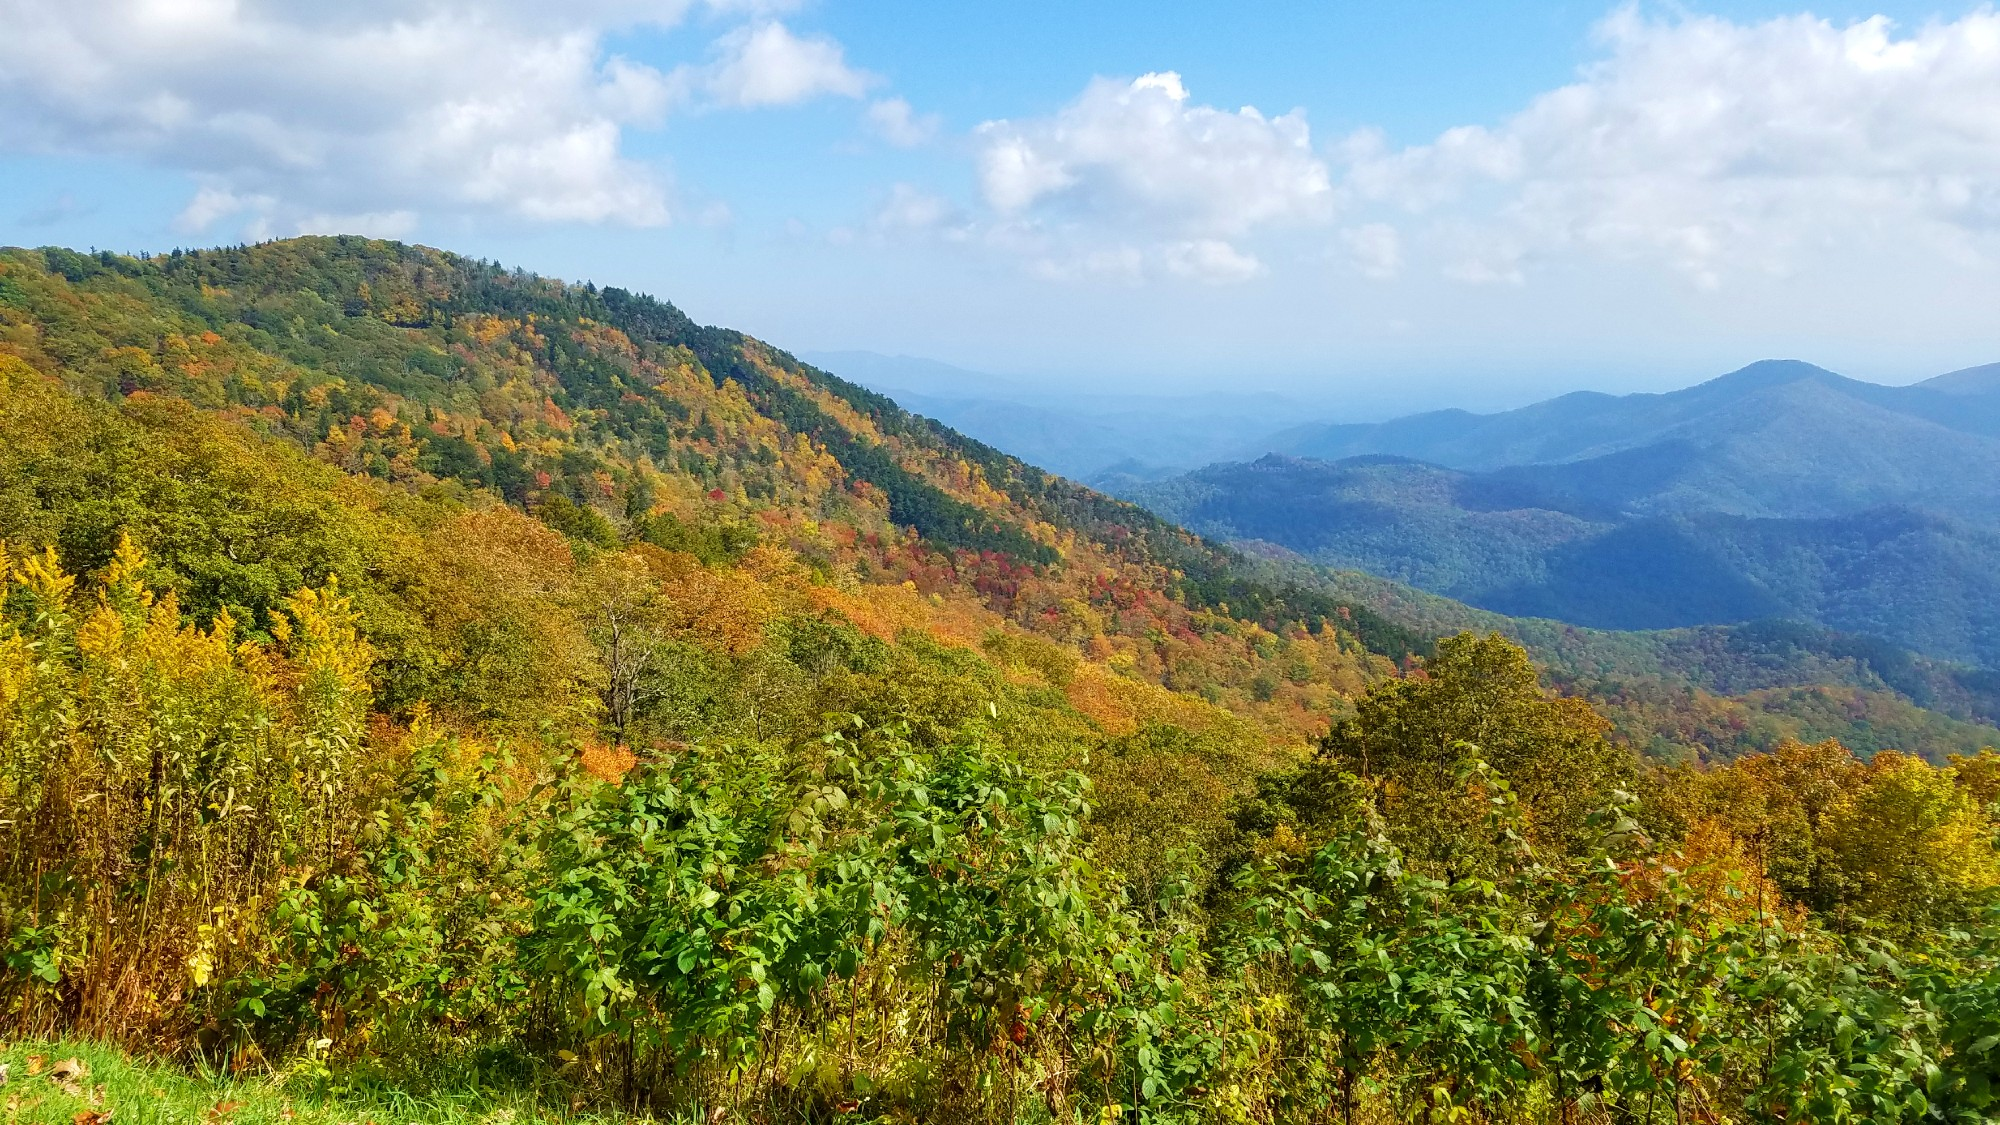 Mountain vista showing several peaks and with fall colors on the trees